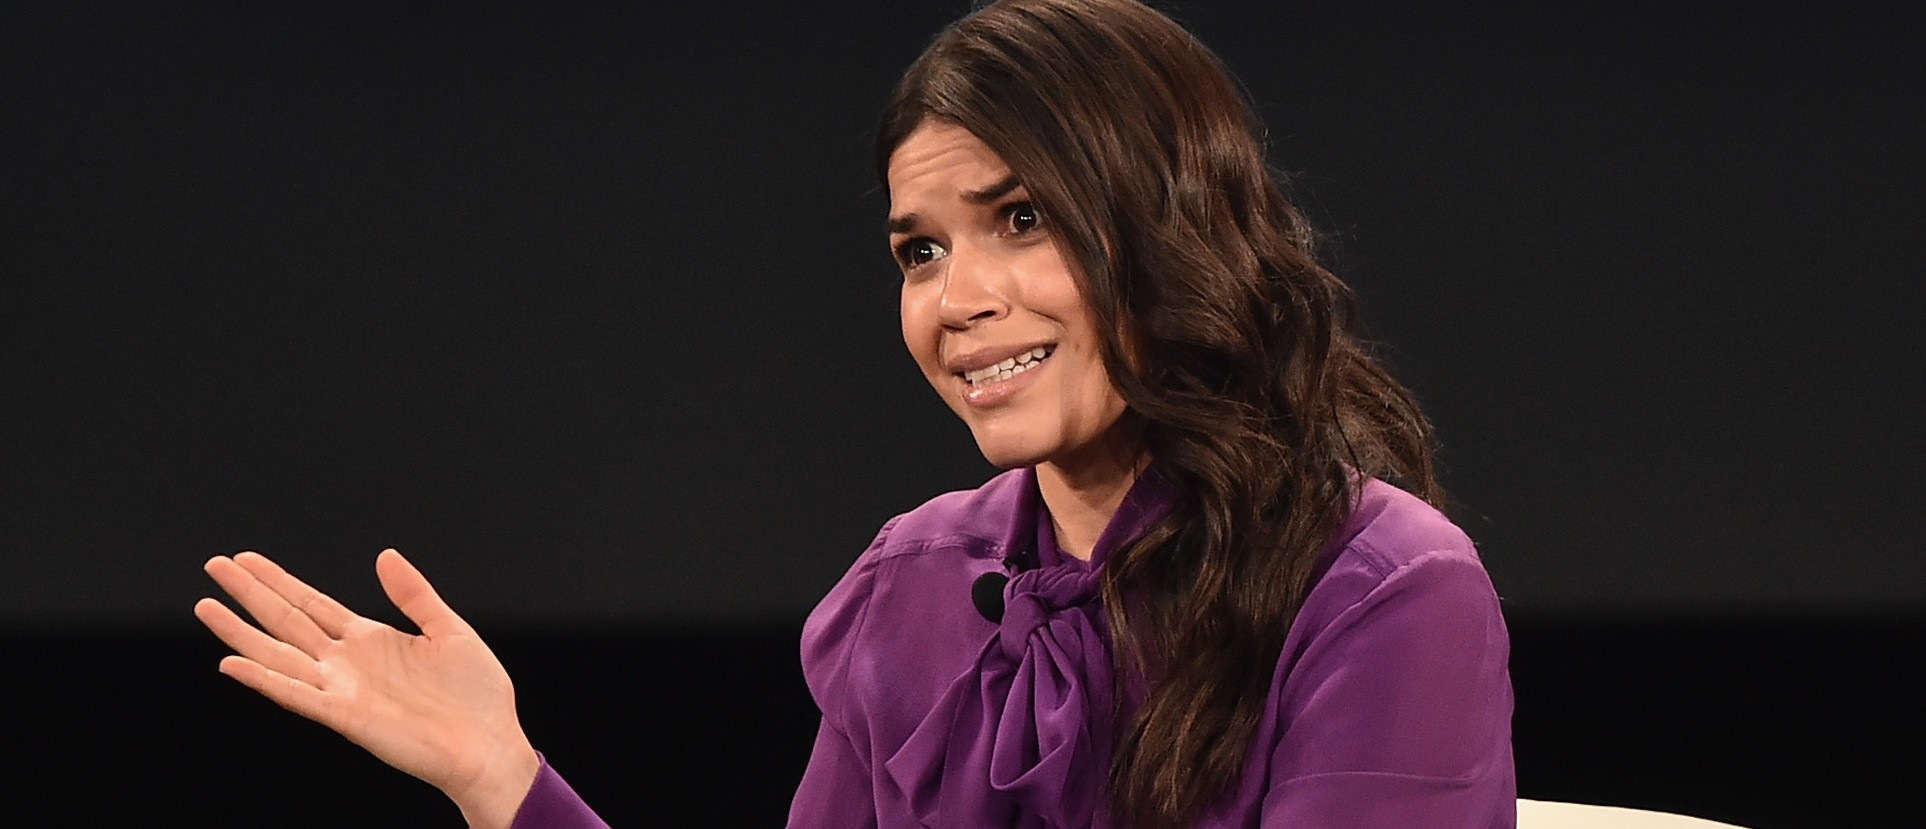 RANCHO PALOS VERDES, CA - FEBRUARY 01: Actress America Ferrera speaks at the 2016 AOL MAKERS Conference at Terranea Resort on February 1, 2016 in Rancho Palos Verdes, California. (Photo by Alberto E. Rodriguez/Getty Images)